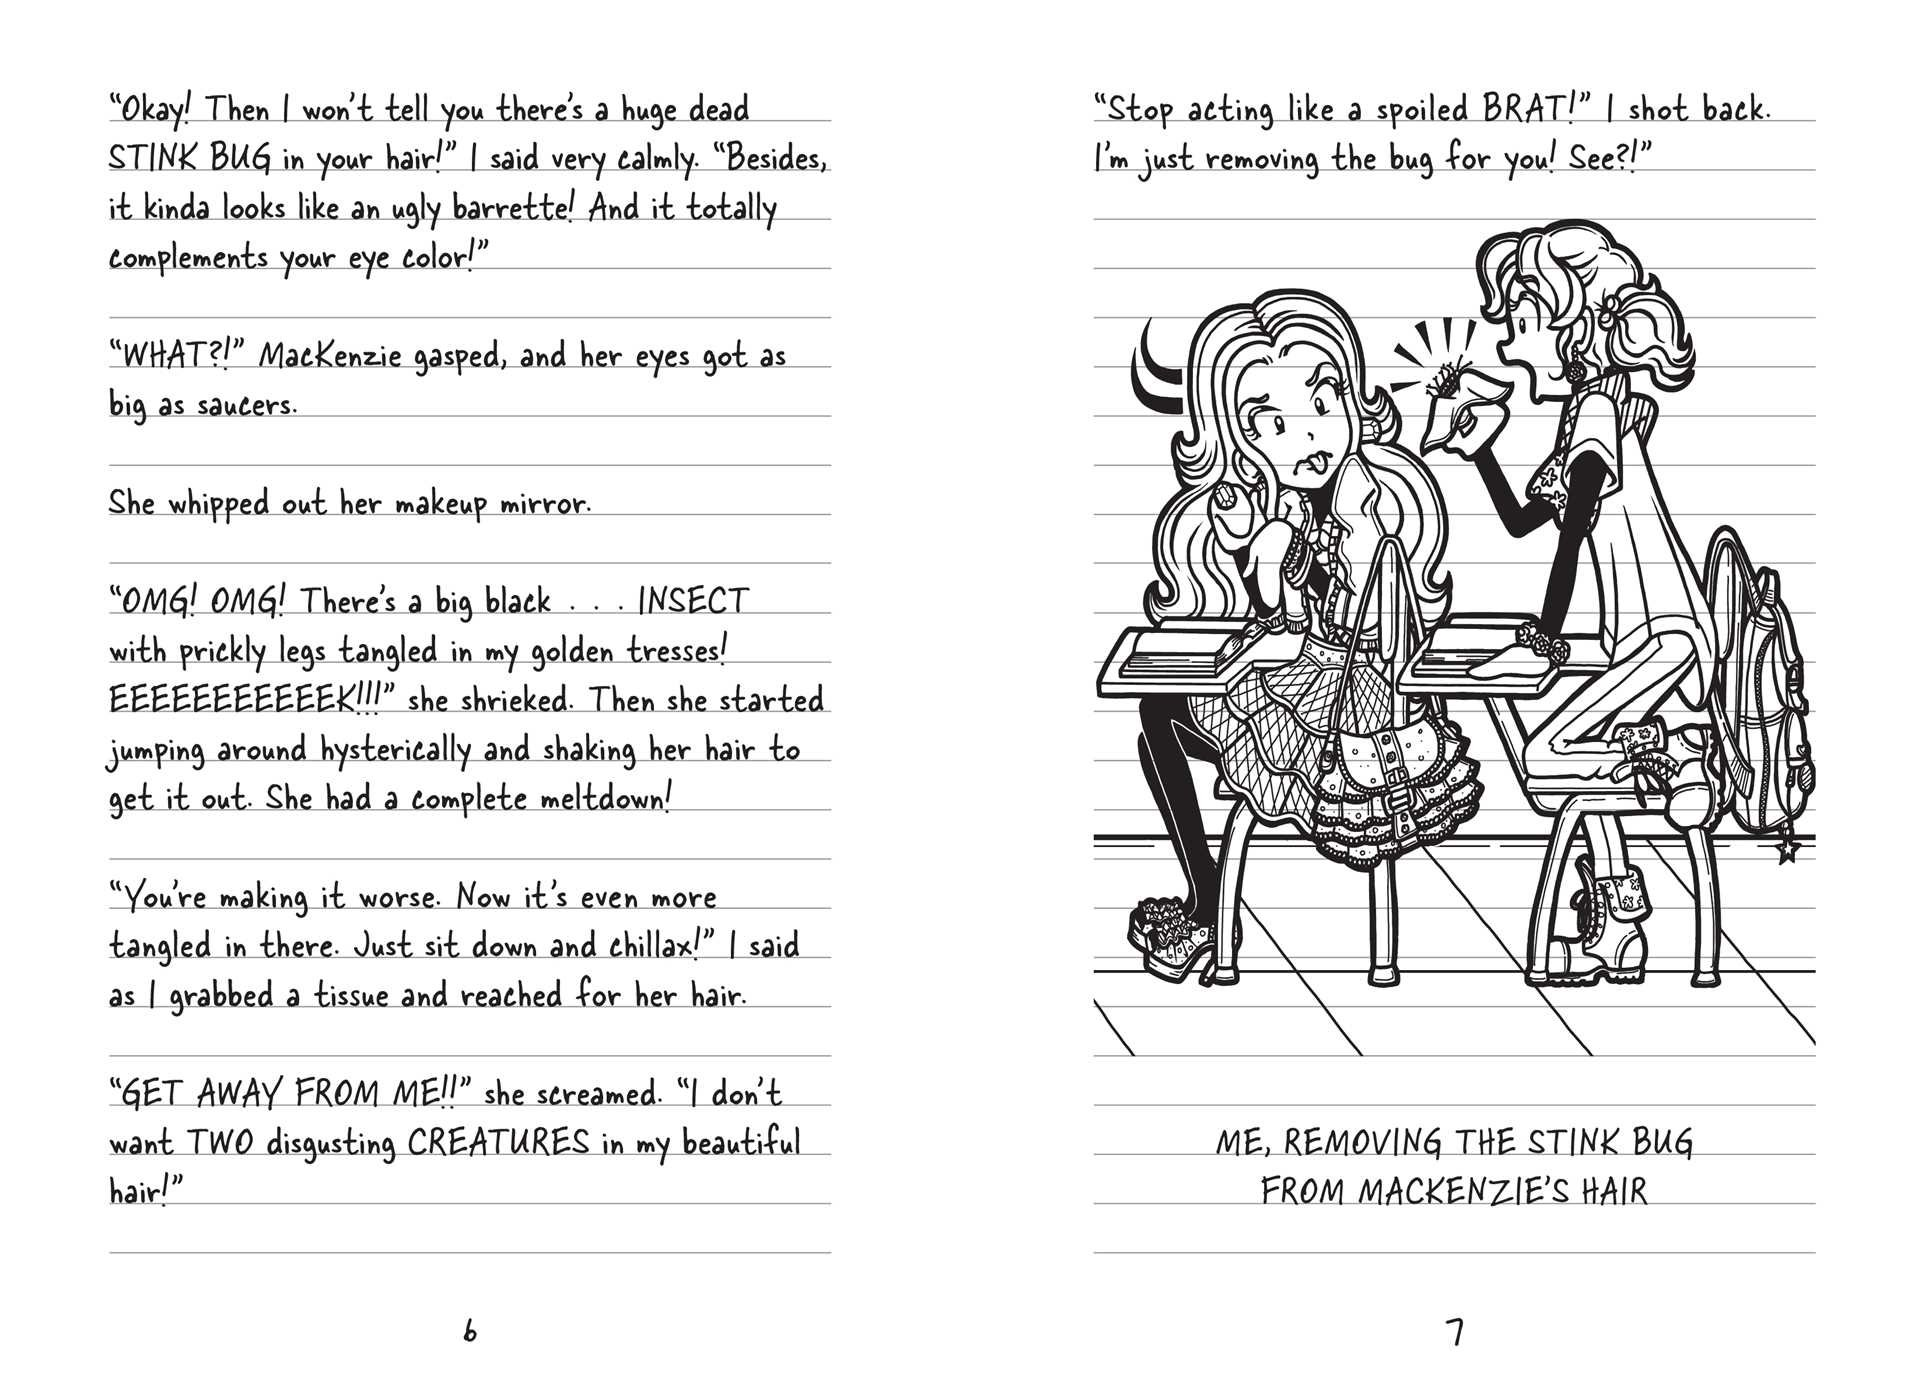 Coloring pages for dork diaries - Dork Diaries 9 Tales From A Not So Dorky Drama Queen Rachel Ren E Russell 9781442487697 Amazon Com Books